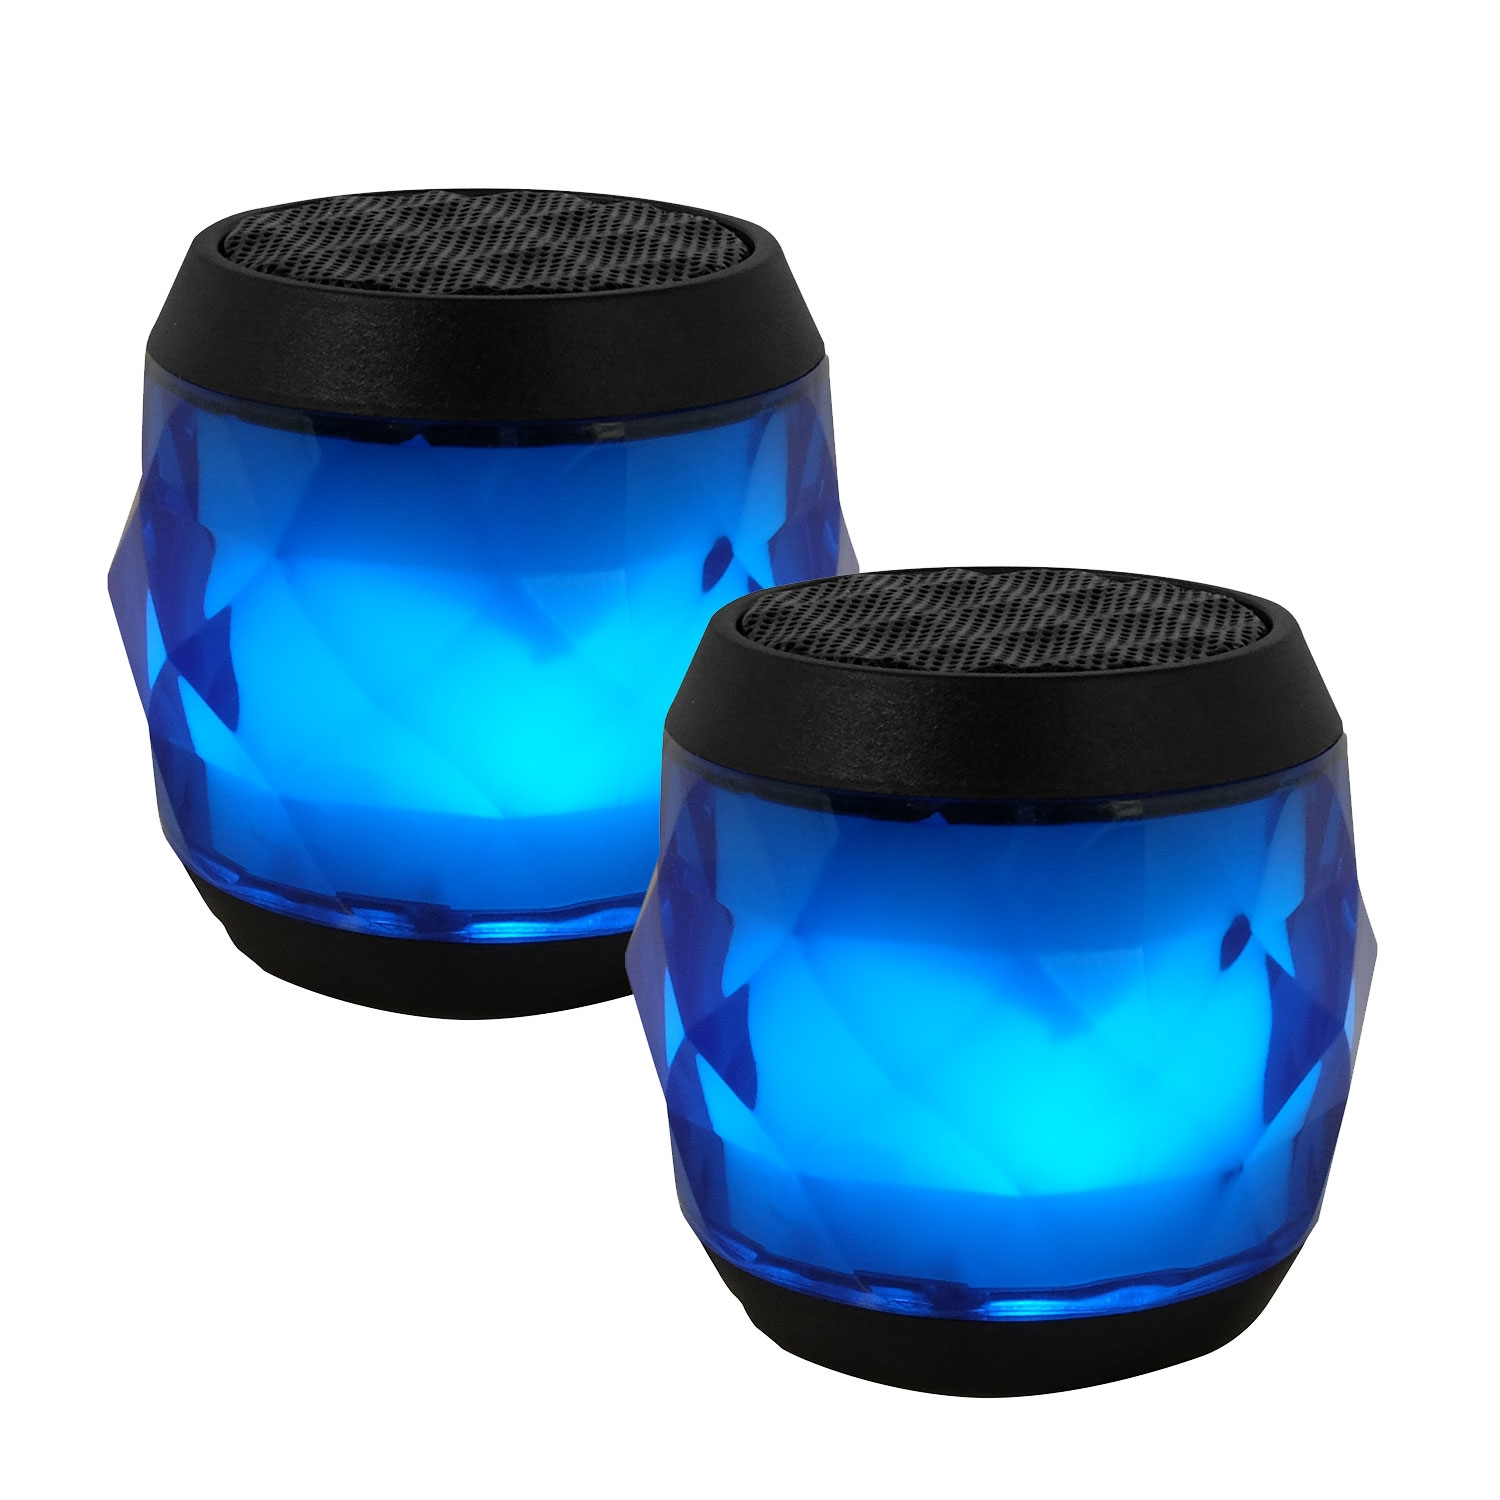 EvoDX BT 4.0 Speaker LED Multi-colour with TWS Feature and Handsfree Mic - Blue - Value Twin Pack